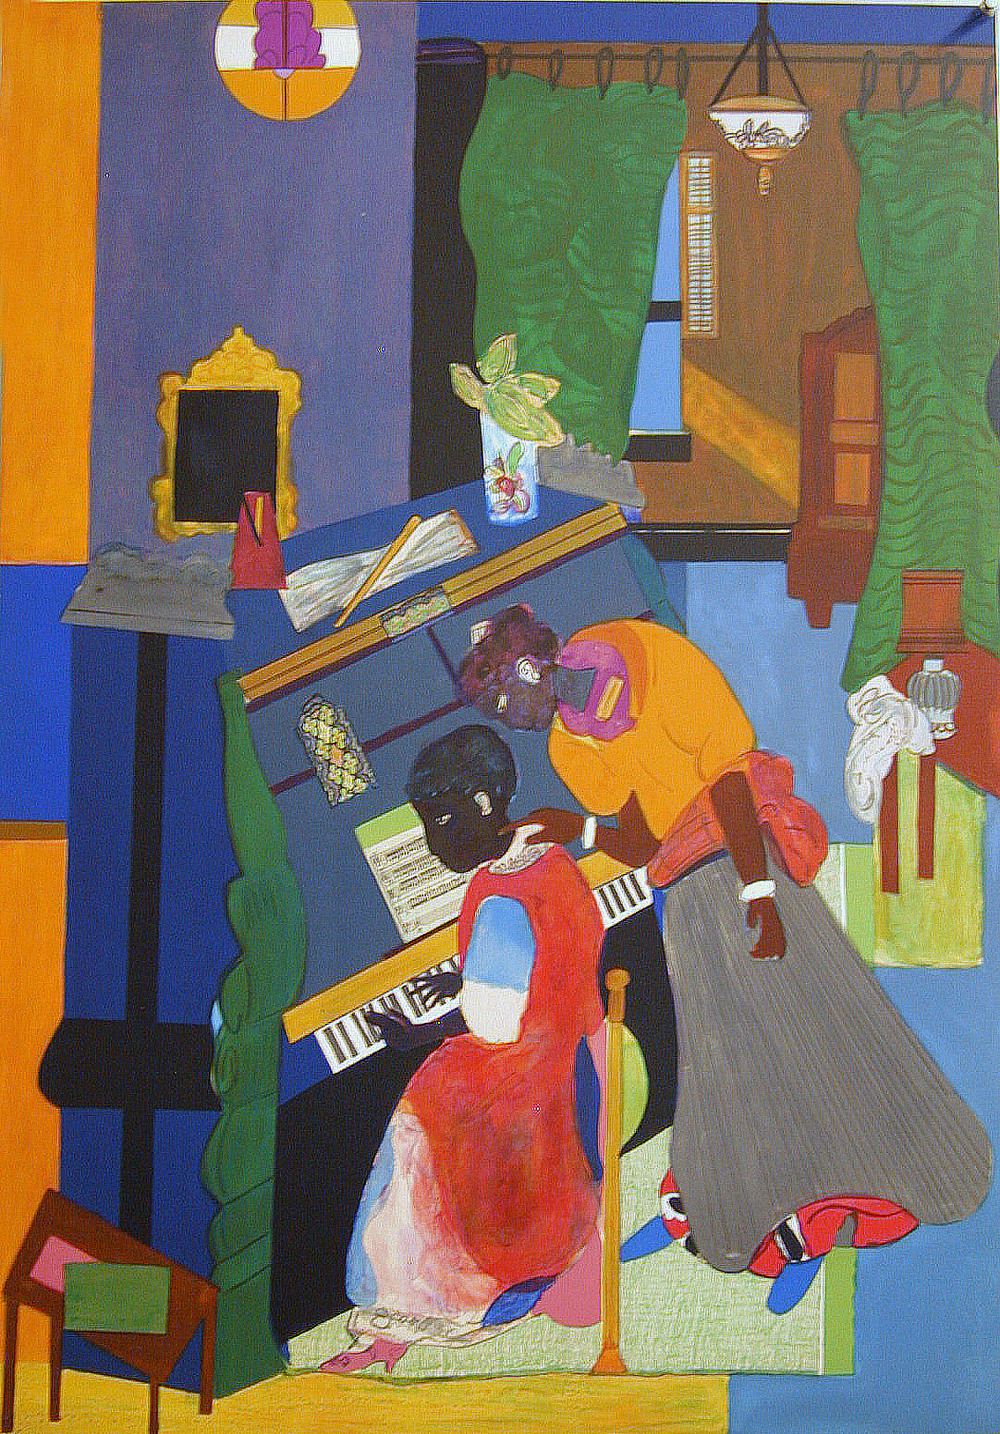 Romare Bearden,  The Piano Lesson   ,   1983     Image courtesy of Art @ Romare Bearden Foundation/Licensed by VAGA, New York, NY